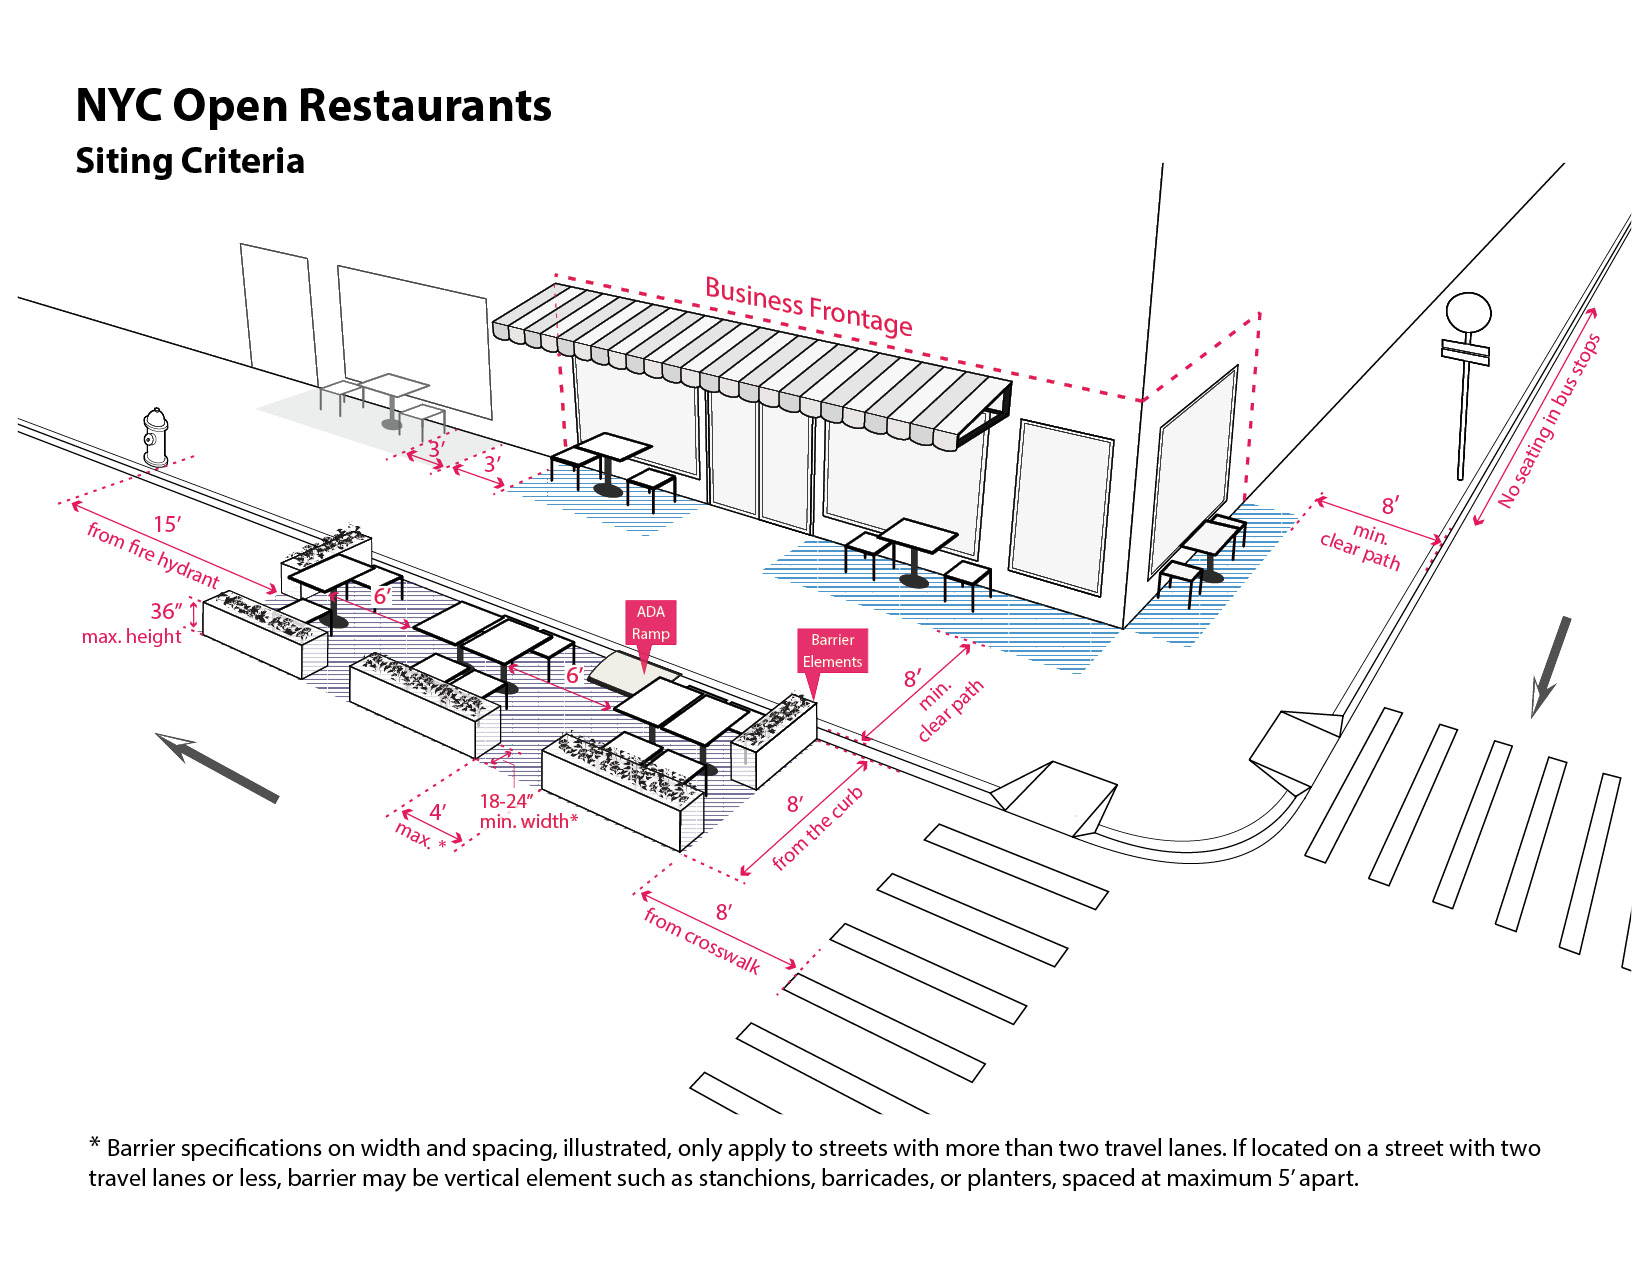 DRAFT diagram to show outdoor dining specifications for sidewalk seating and curbside seating at an Open Restaurant